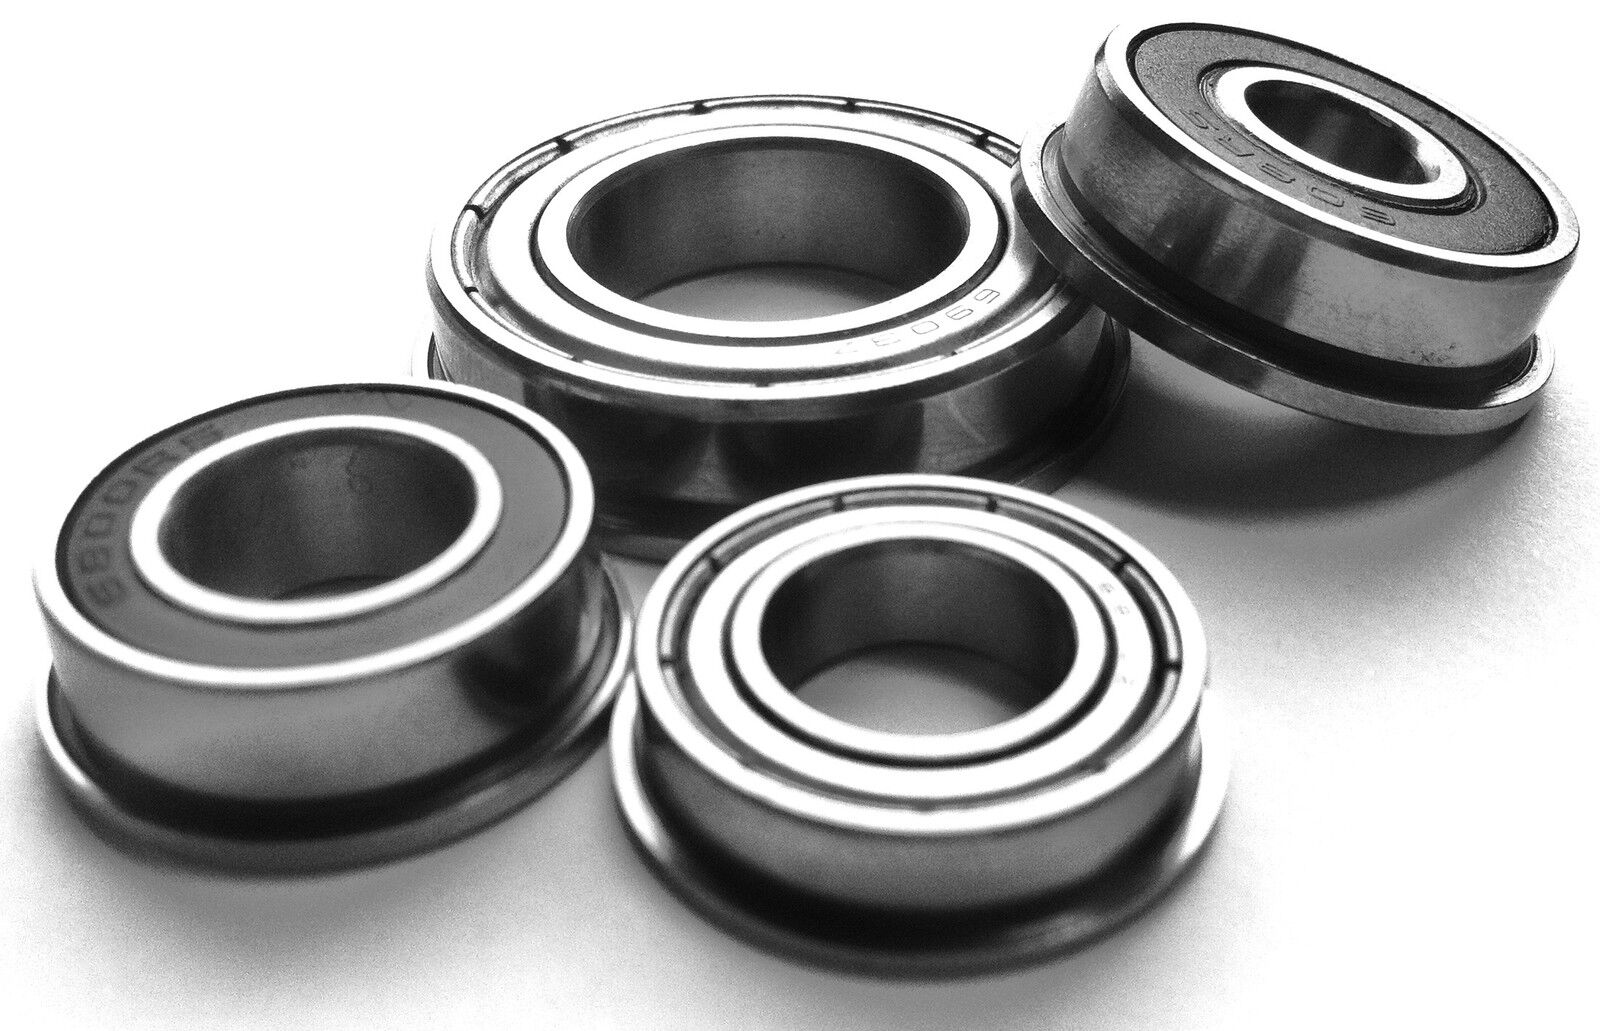 F6000-F6001 SERIES FLANGED METRIC BEARINGS Rubber Sealed or Shielded